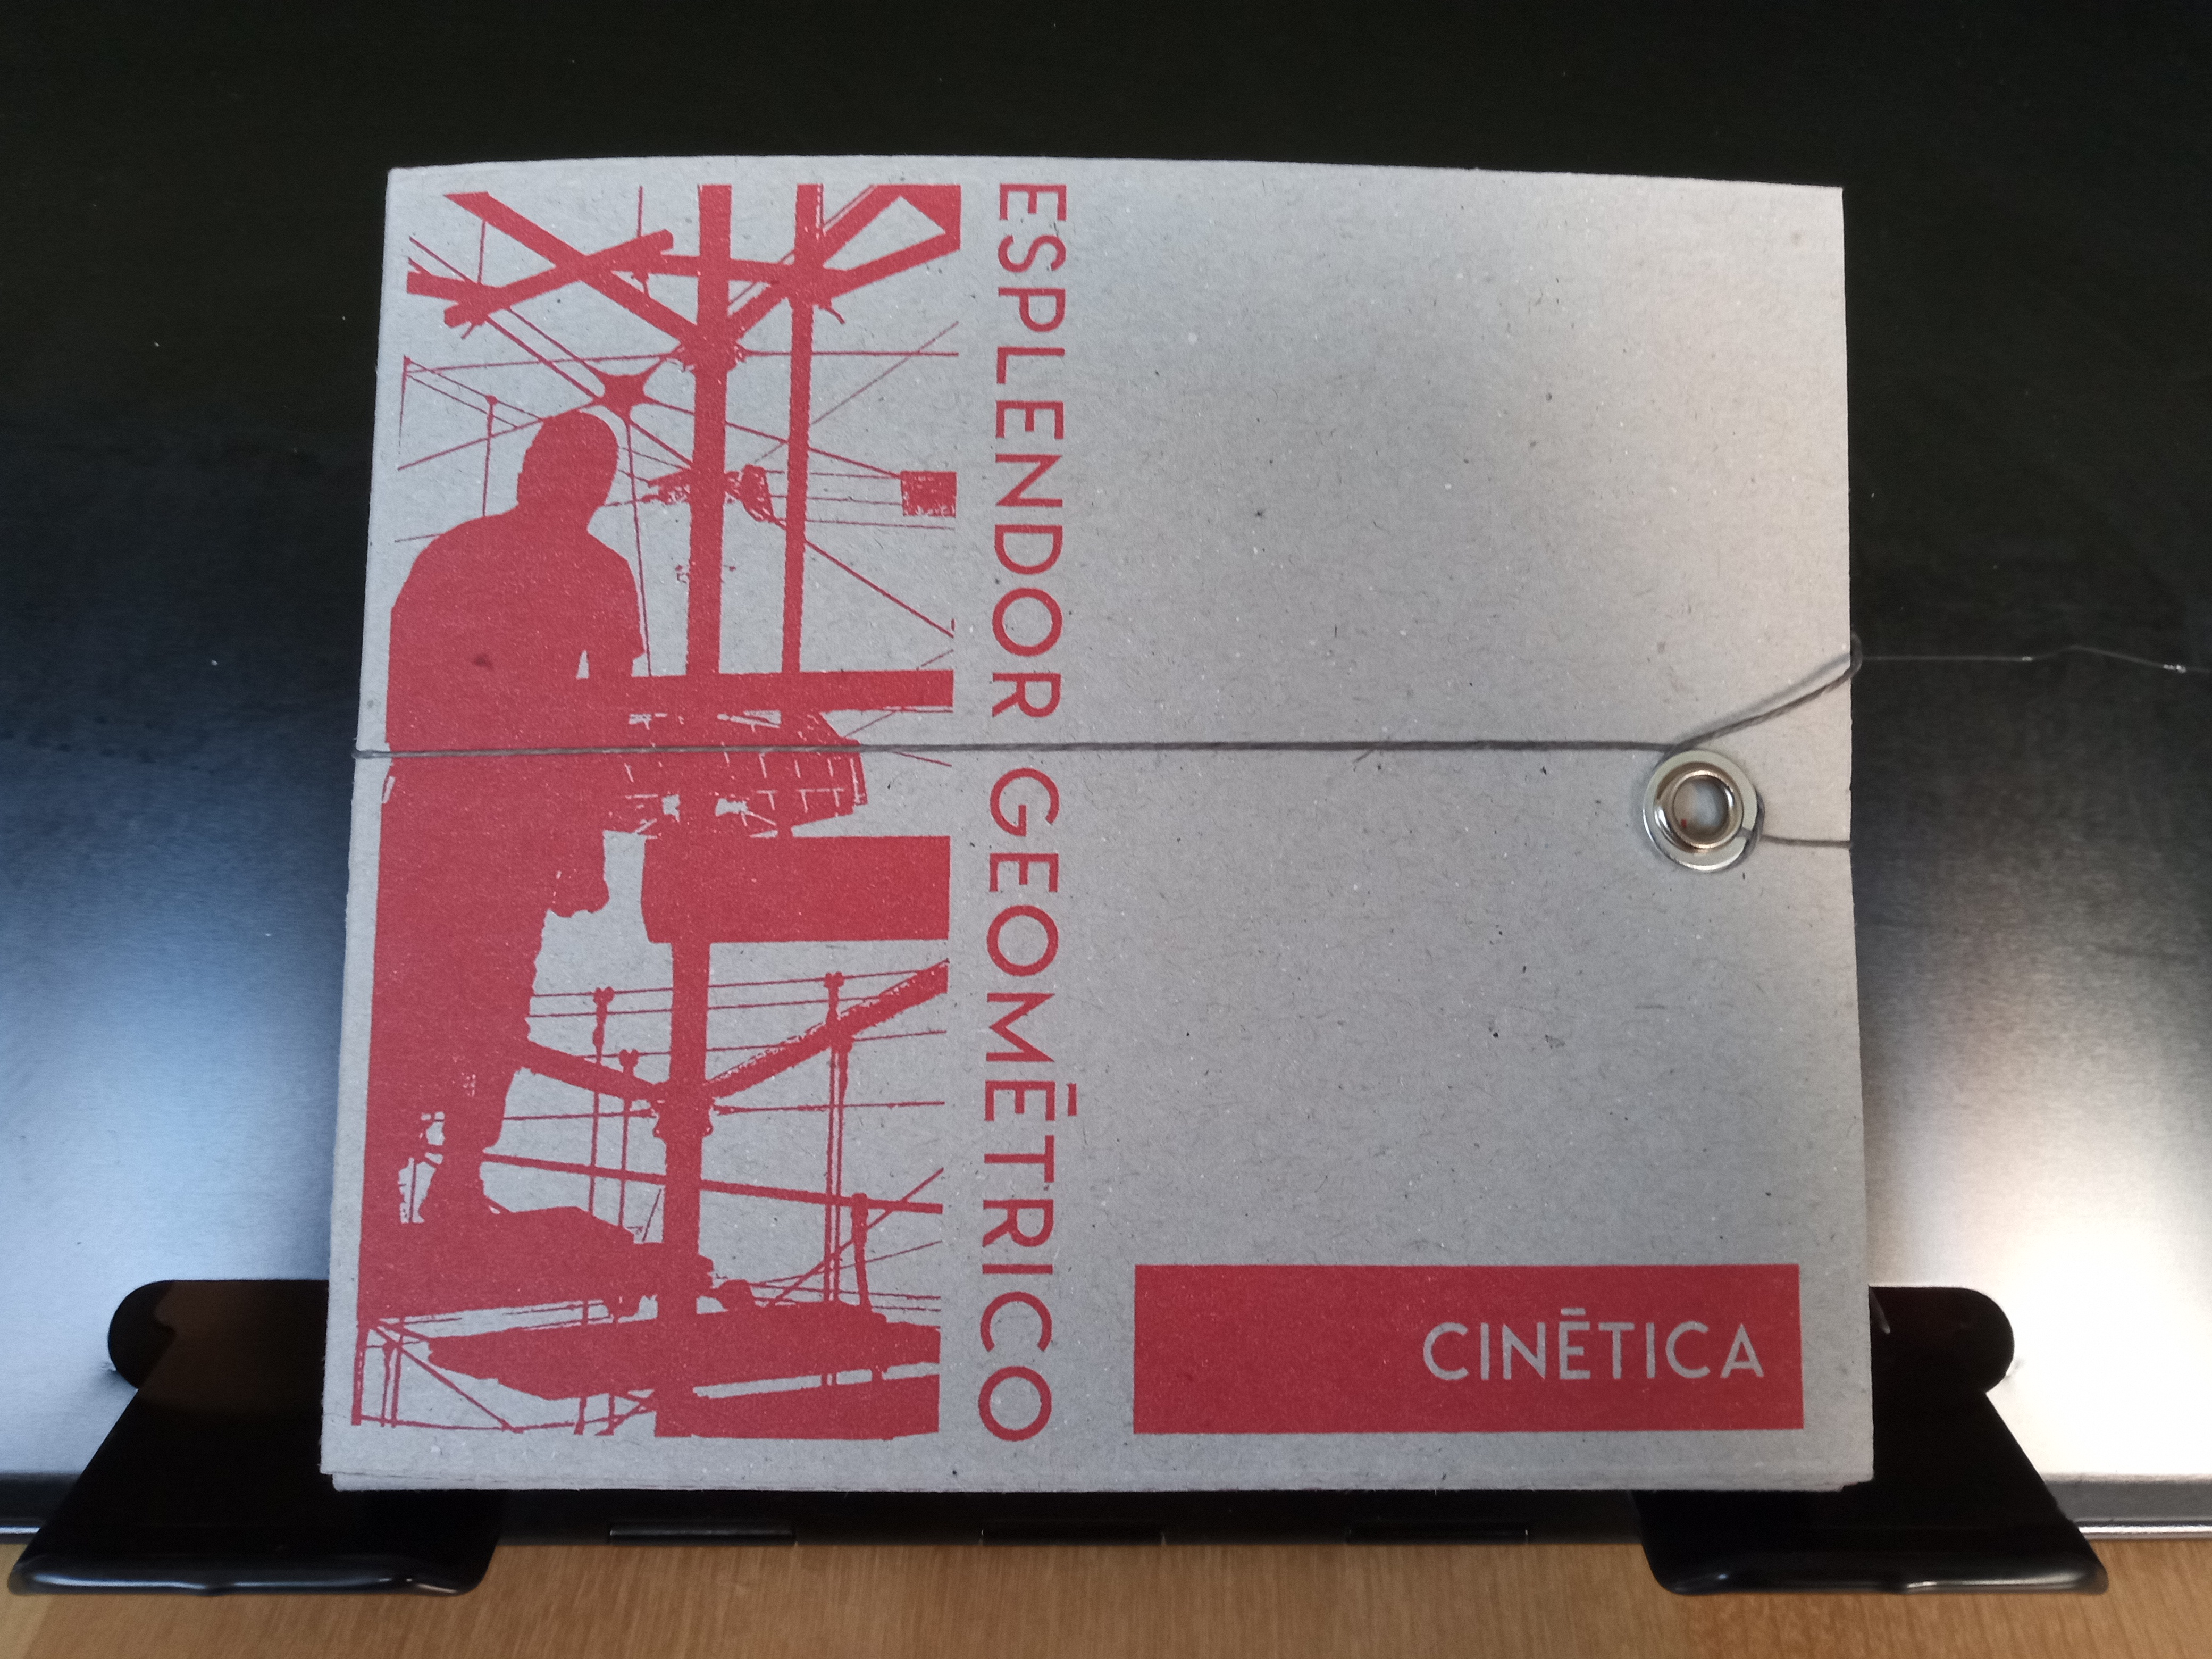 CINÉTICA: Special Edition Cardboard Box. 2xCD digipack